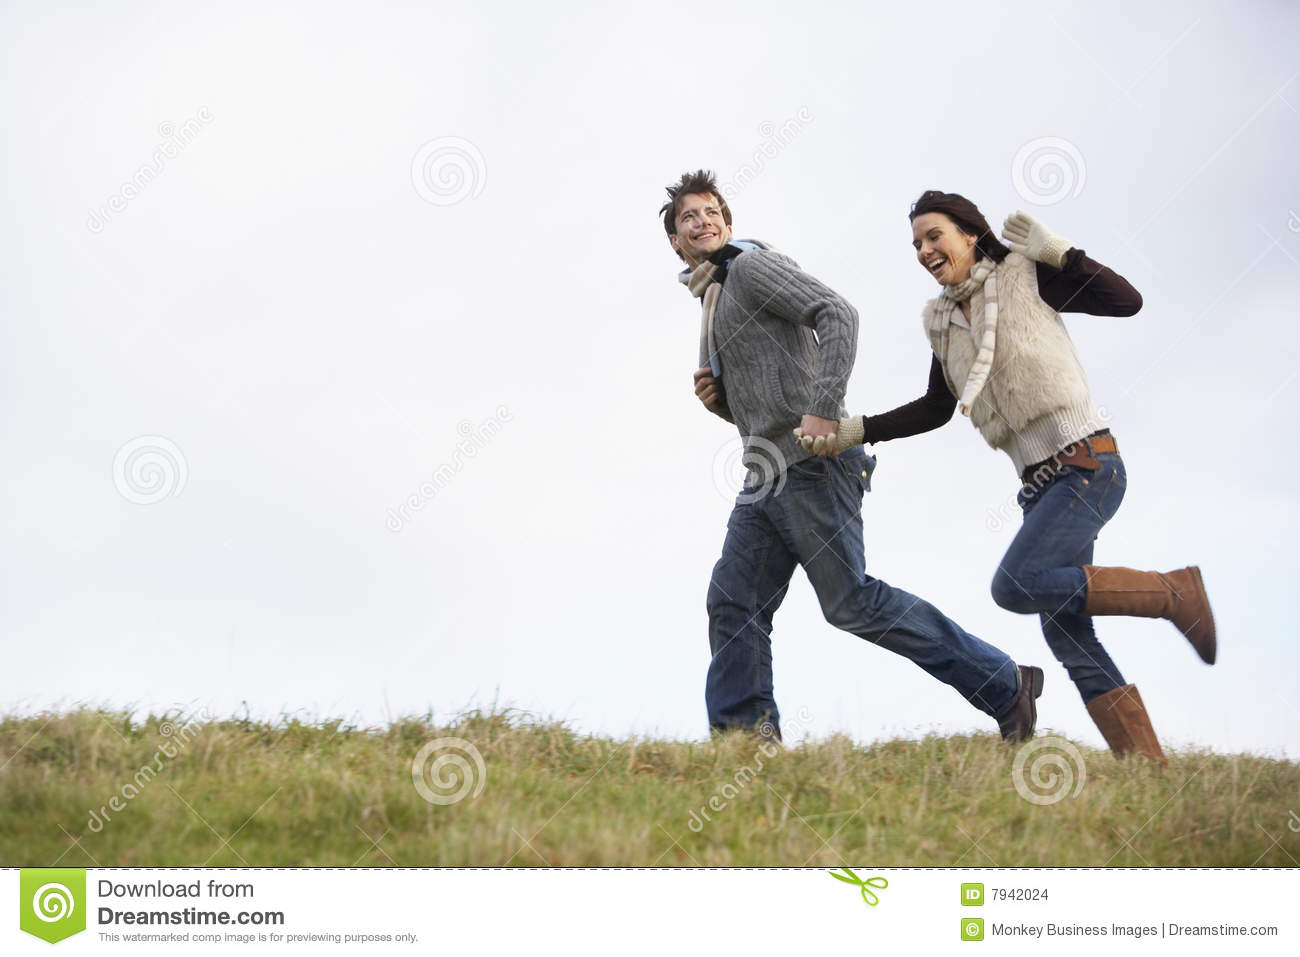 Couple running together holding hands